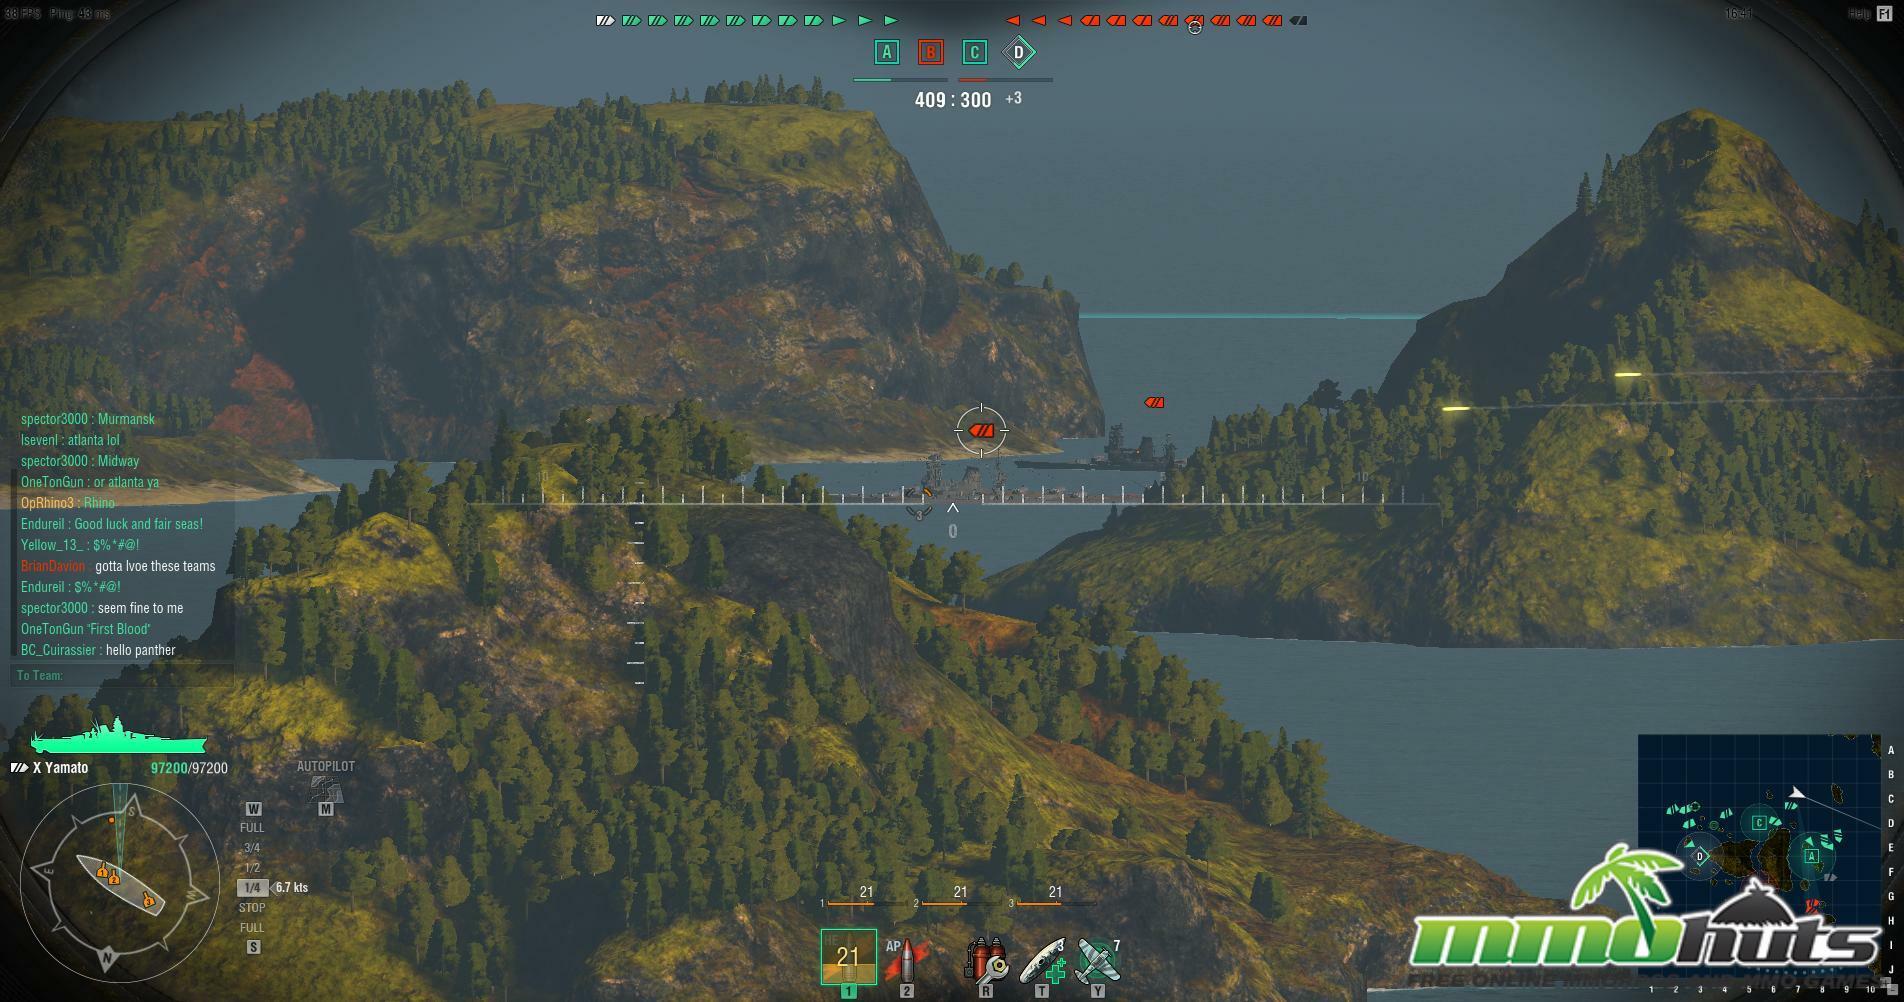 worldofwarships 2015-10-01 16-31-55-53